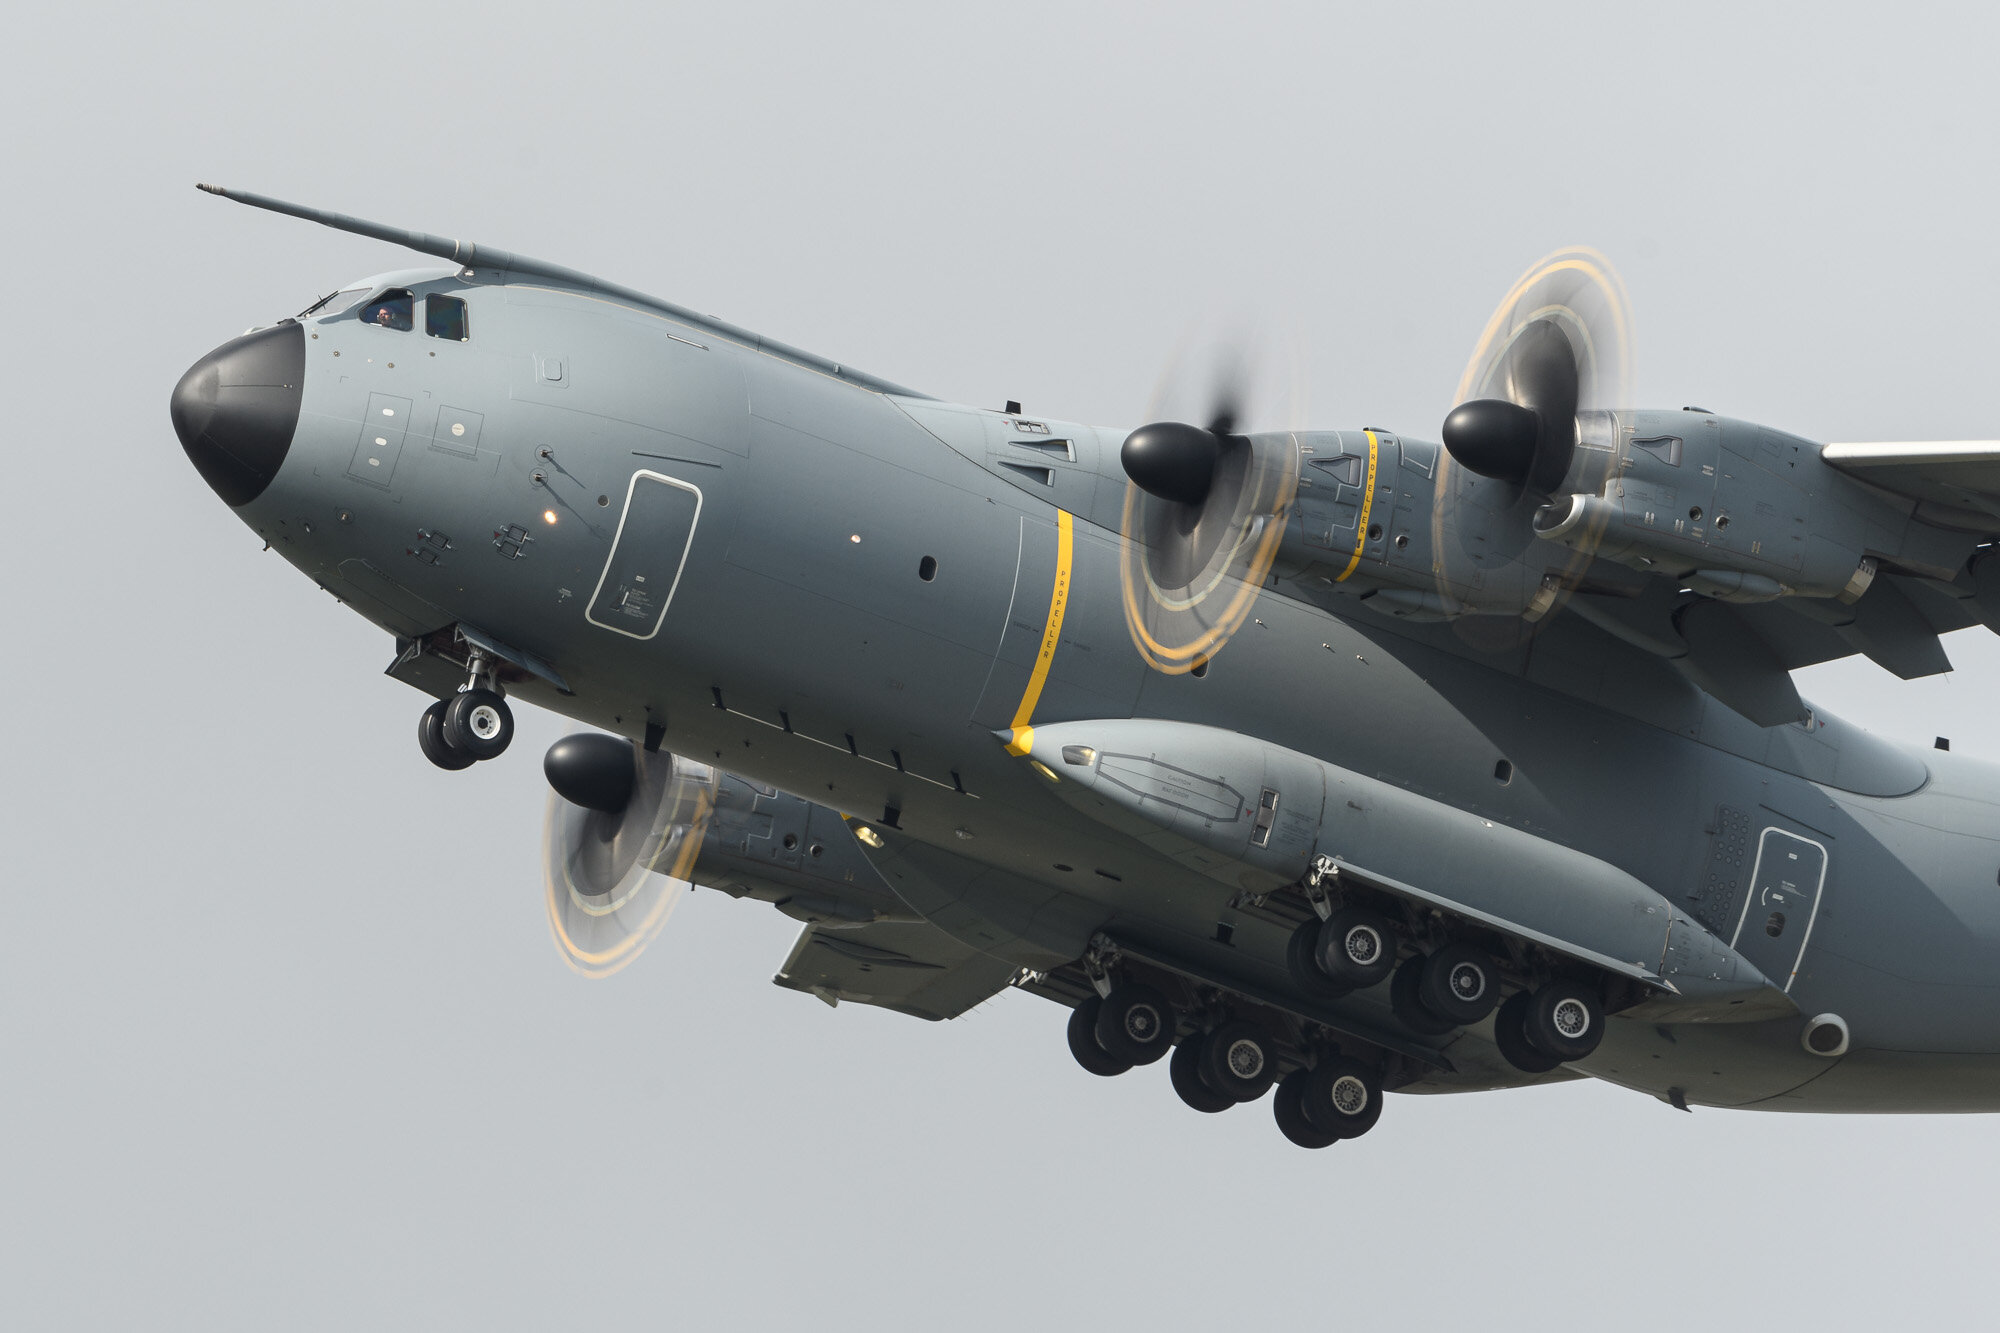 Airbus Military A400M taking off at Fairford. Nikon D500, 500PF, at f/13, 1/100 sec, ISO100. Shutter speed chosen to get full rotation of props.